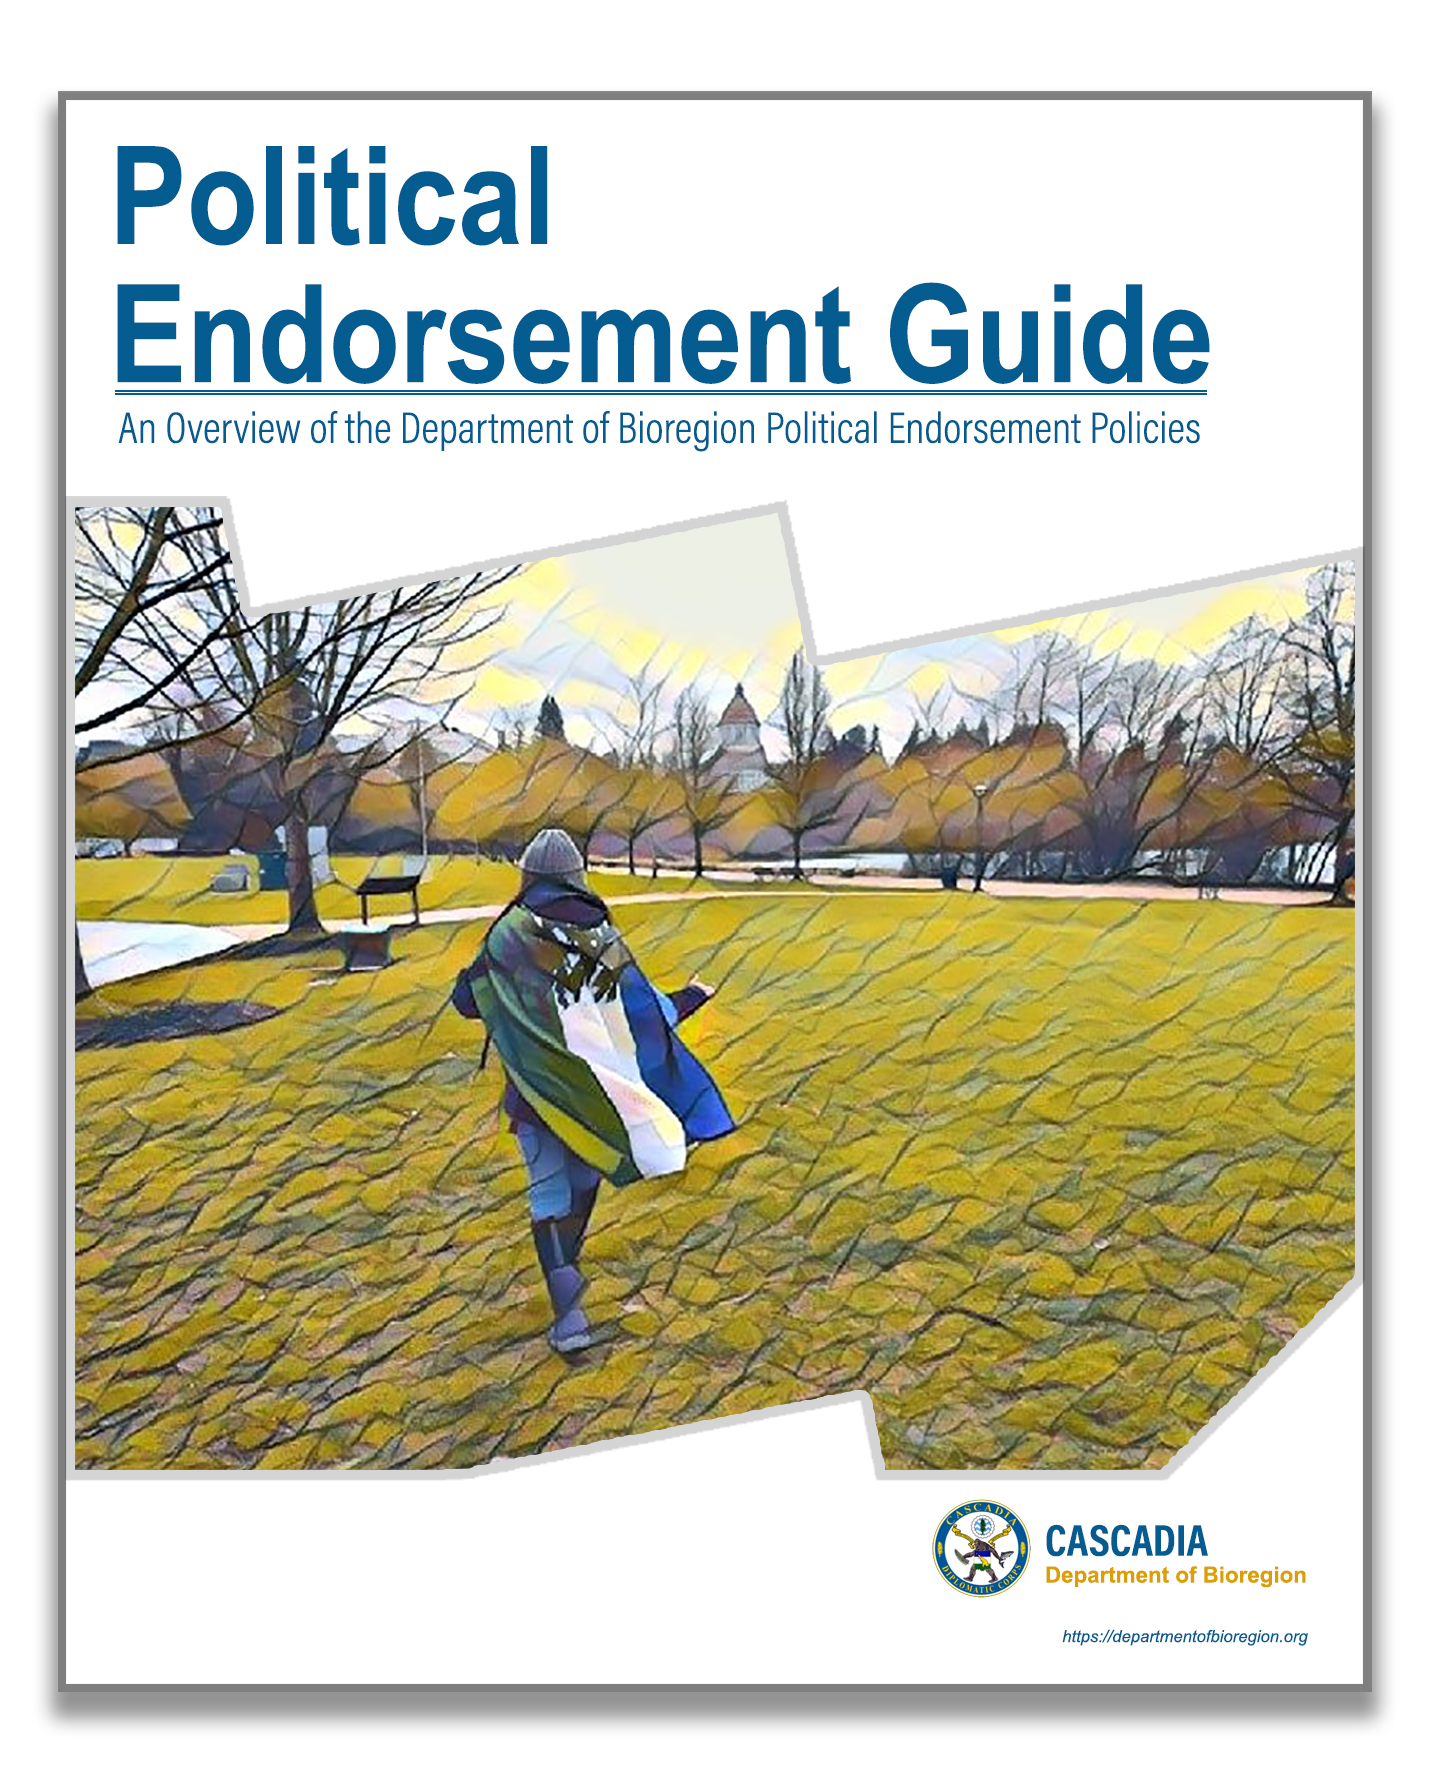 DEPARTMENT OF CASCADIA POLITICAL POLICY ENDORSEMENT GUIDE (PDF)